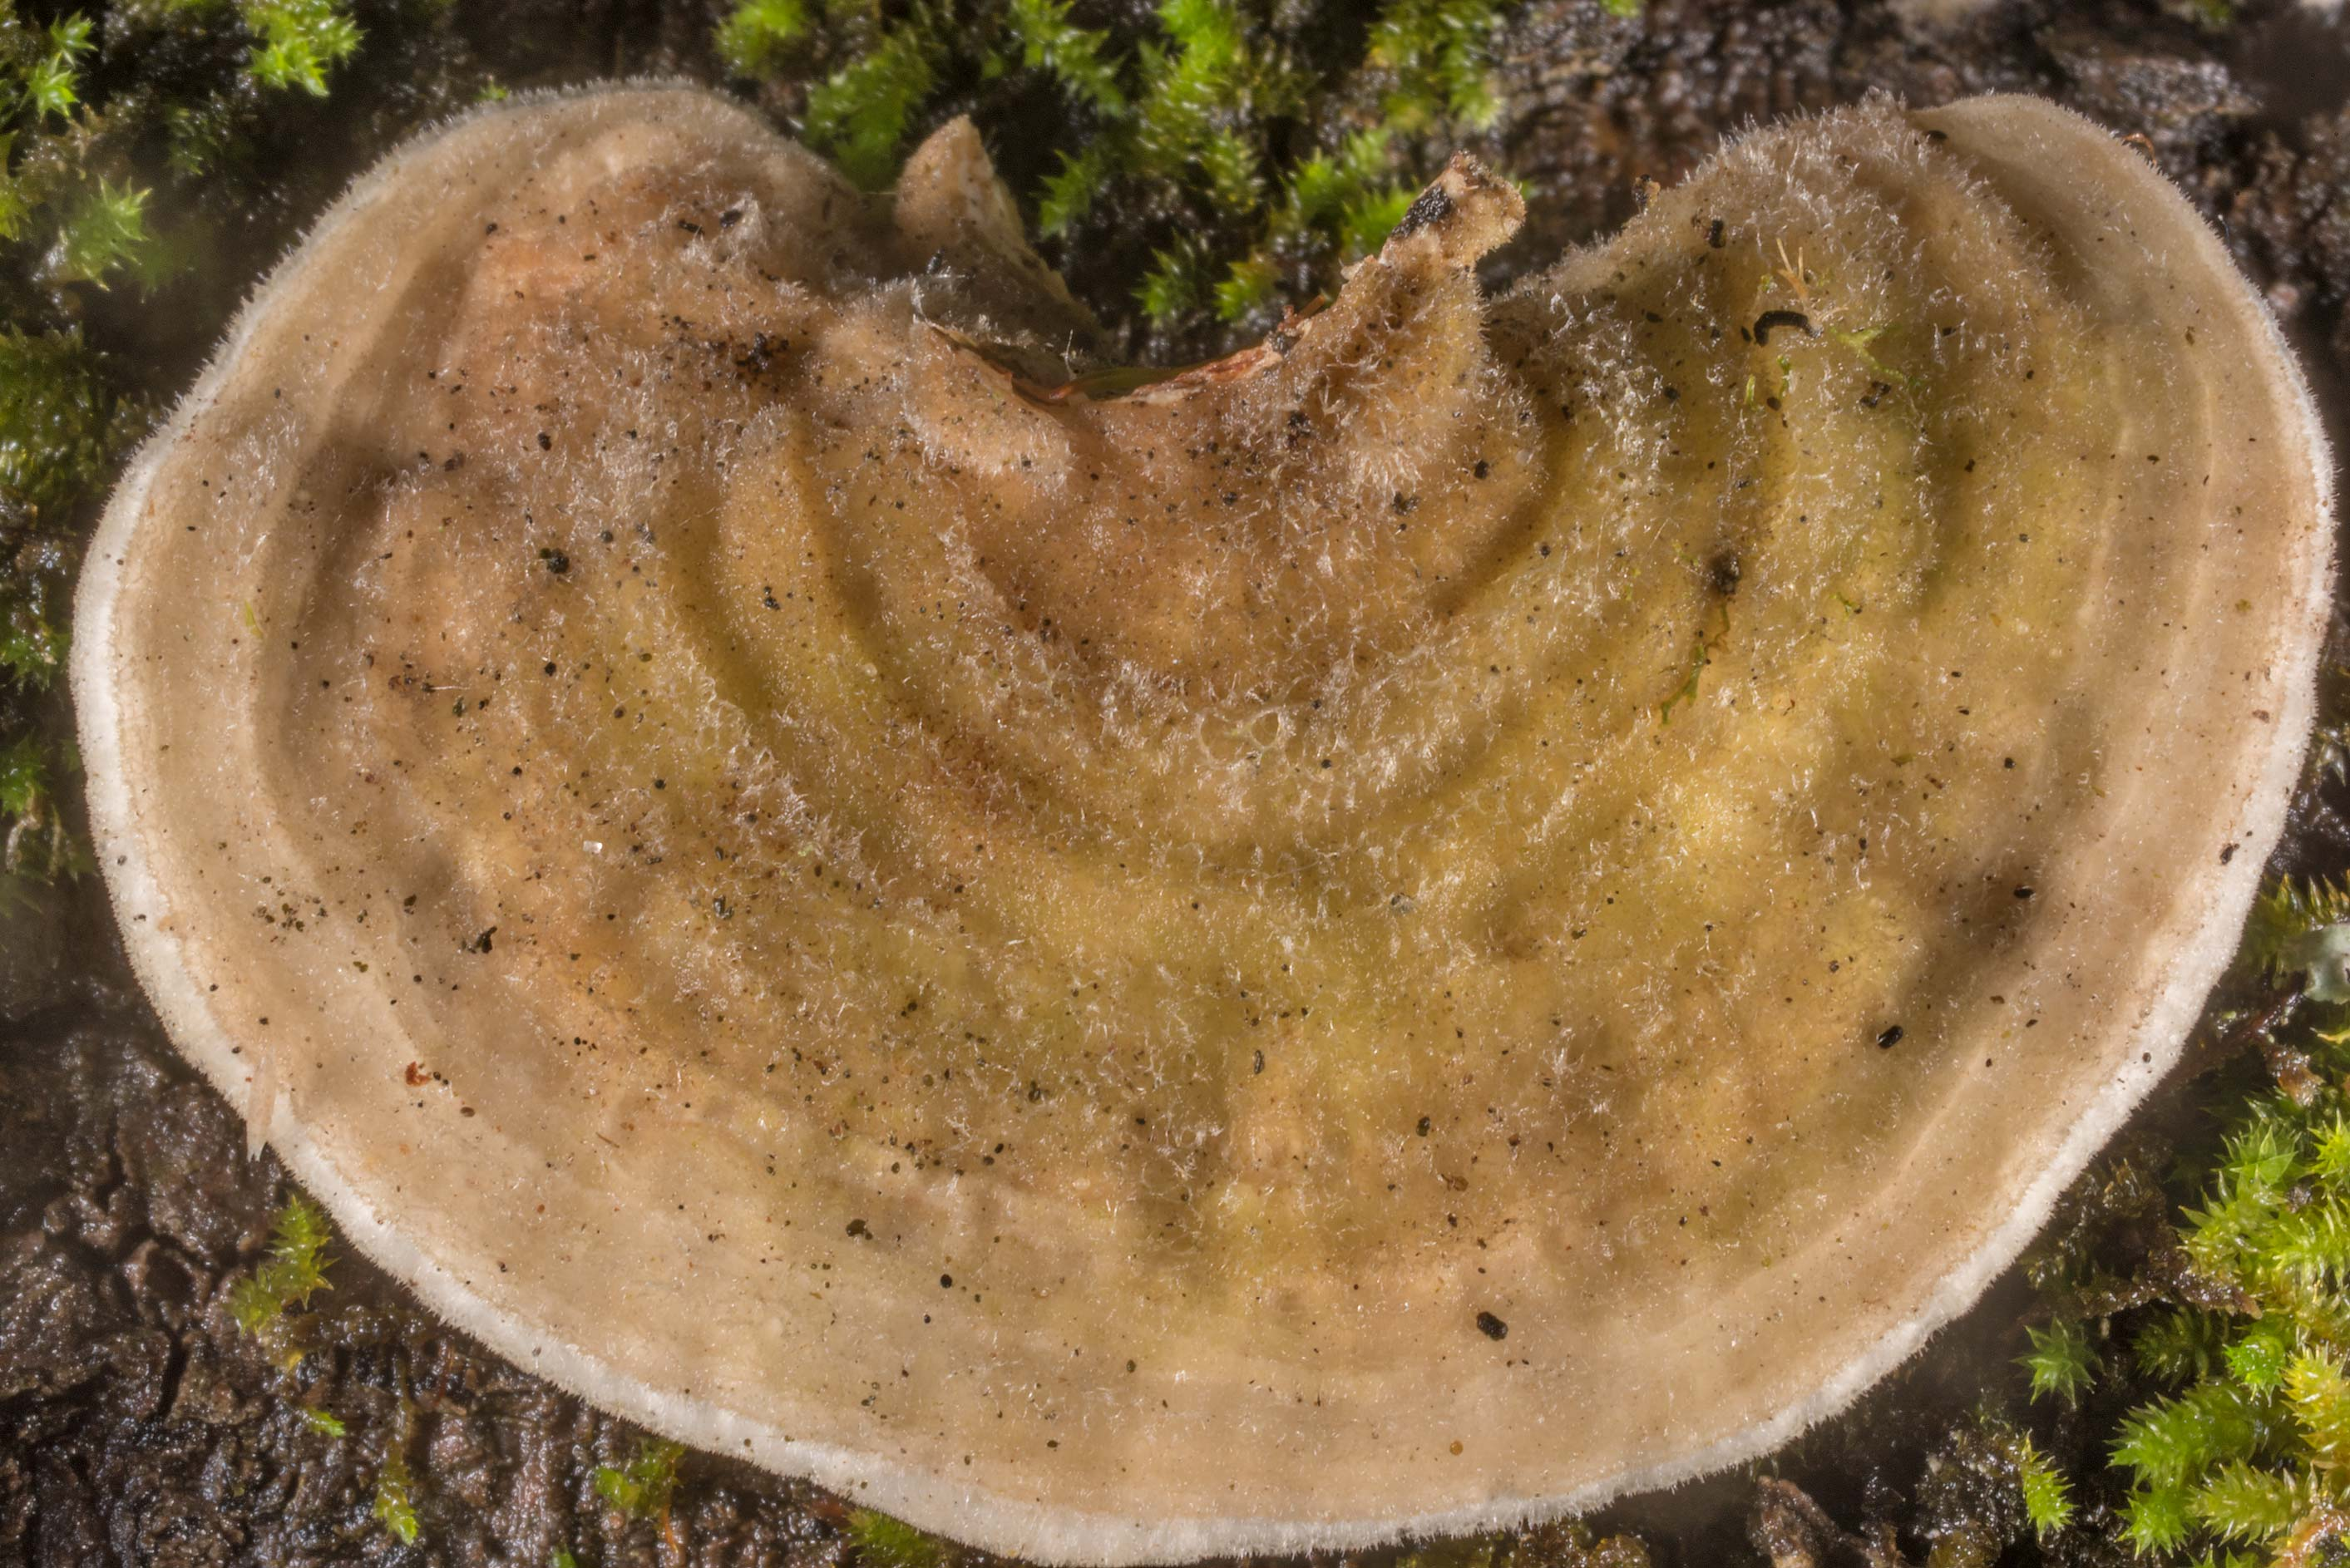 Hairy cap surface of polypore mushroom Trametes...Head No. 4, near Montgomery. Texas